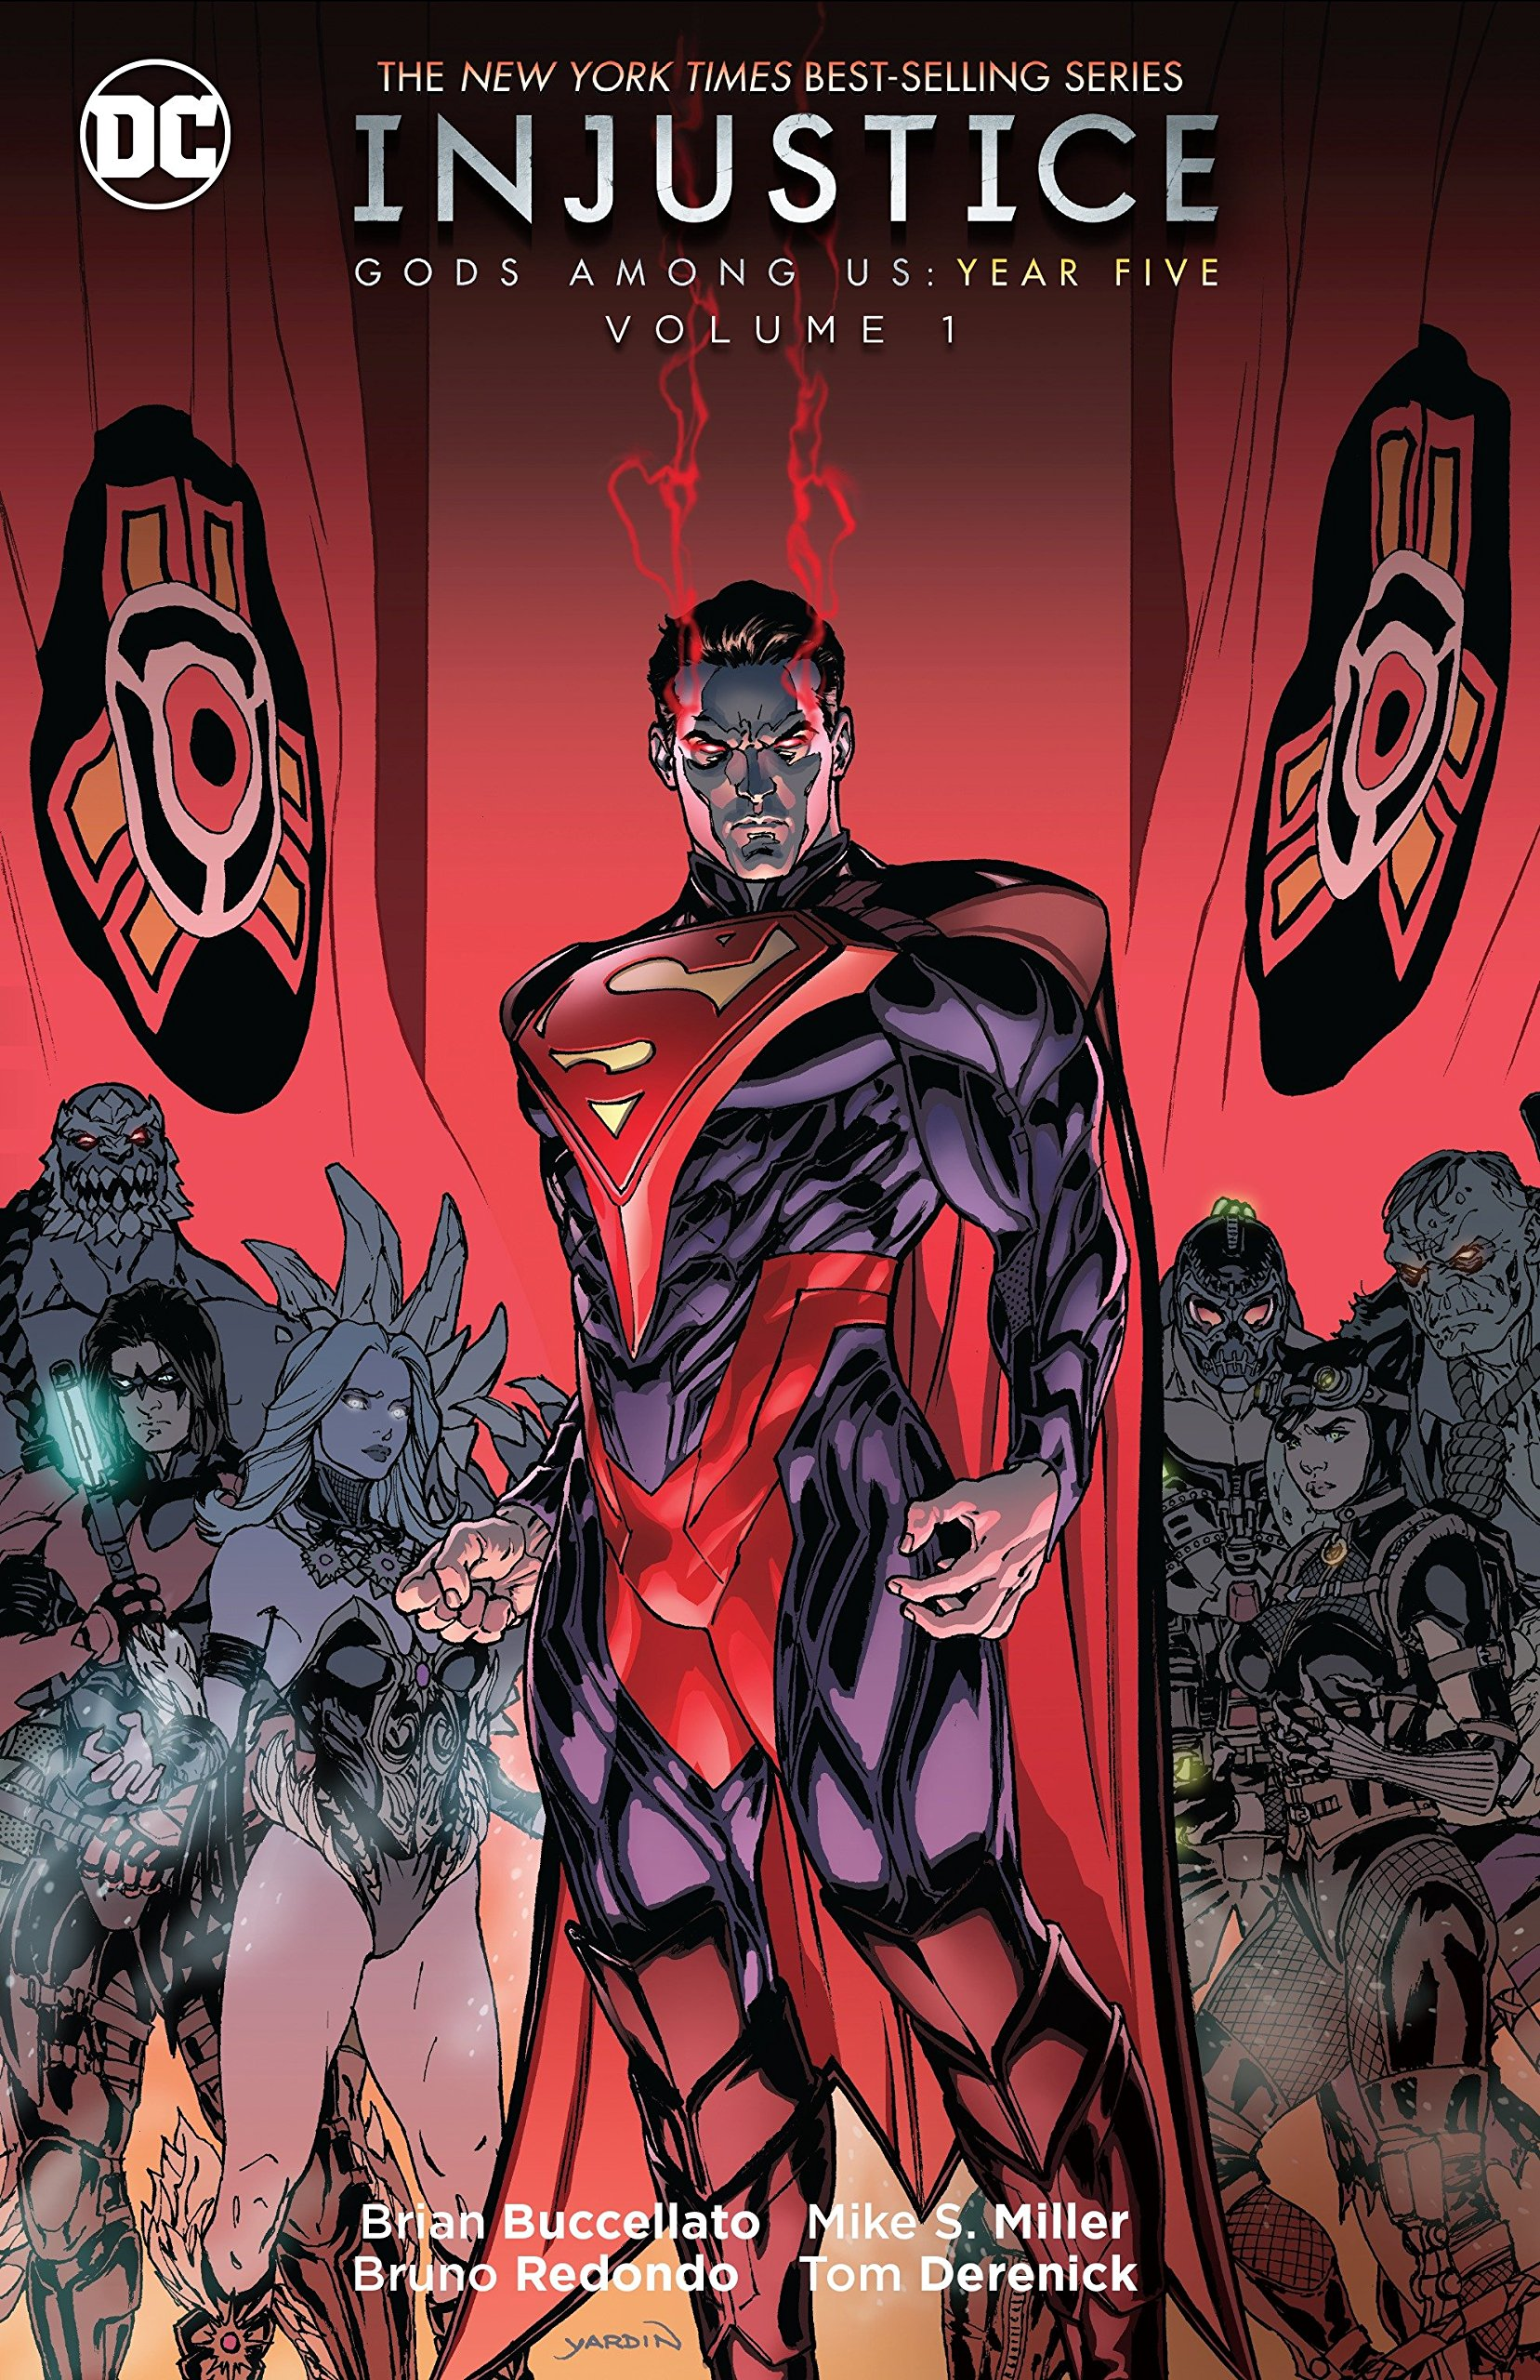 Injustice: Gods Among Us: Year Five Vol. 1 by DC COMICS